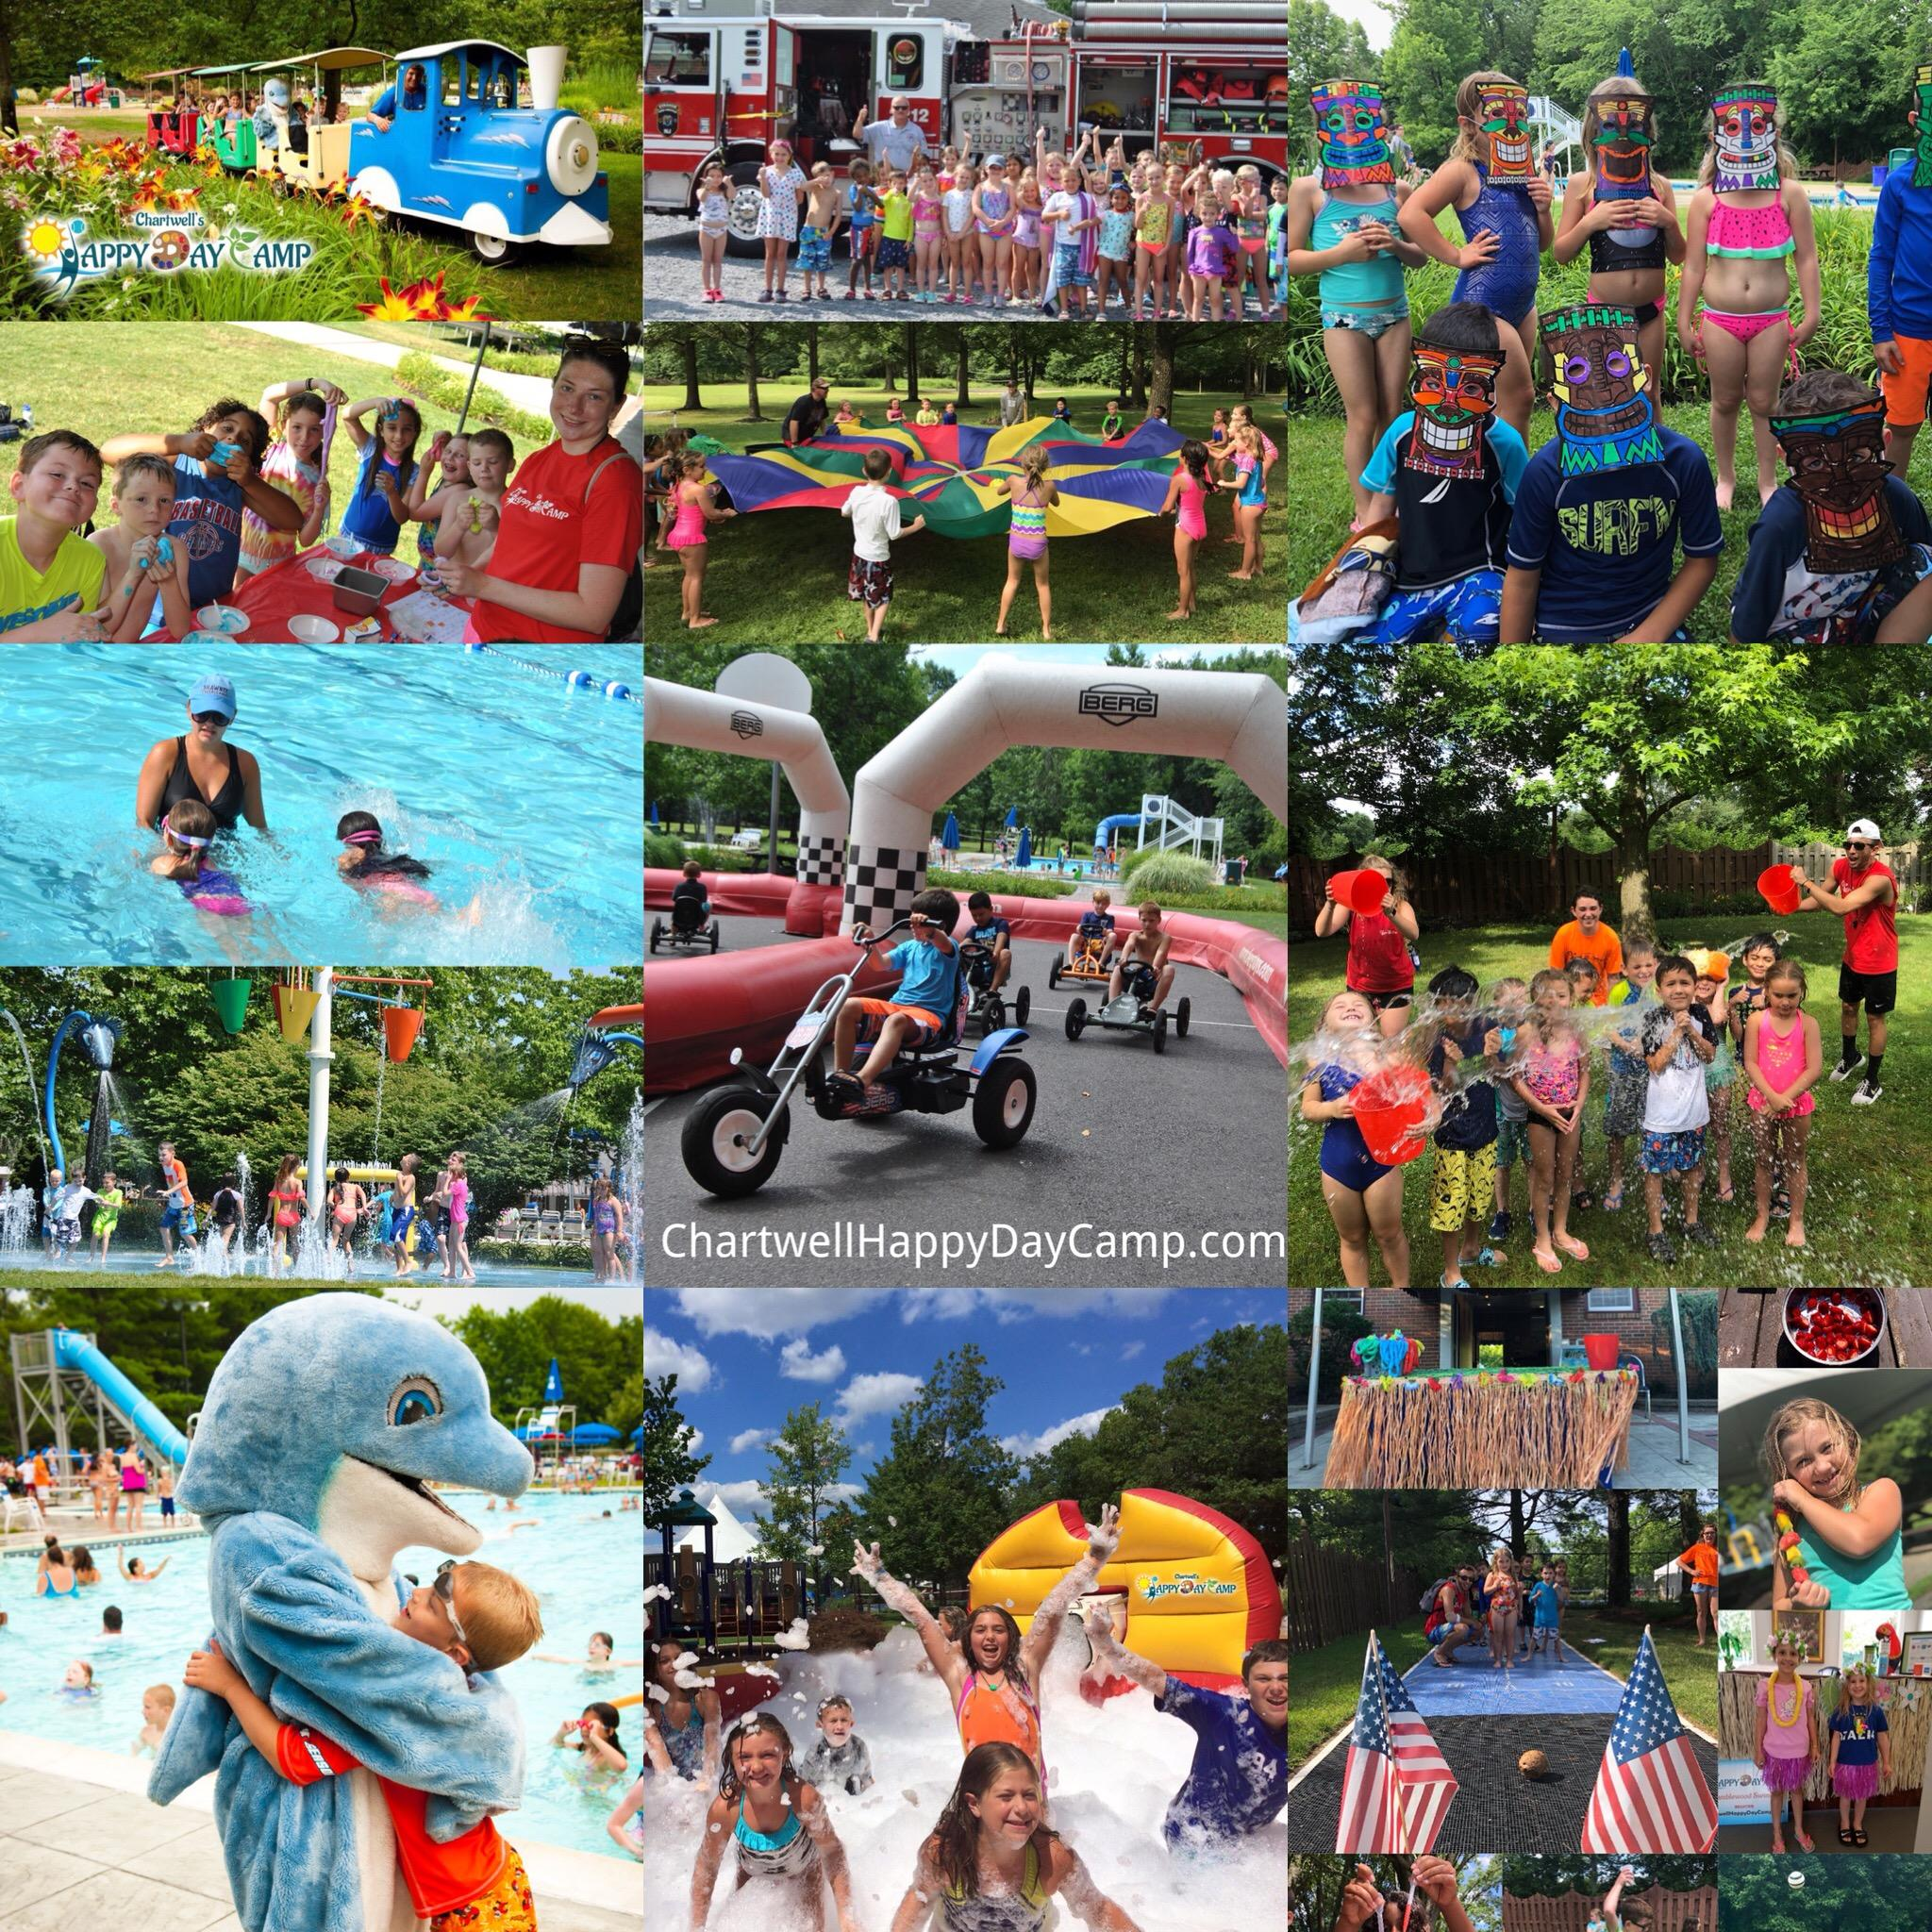 Chartwell's Happy Day Camp Marlton image 0